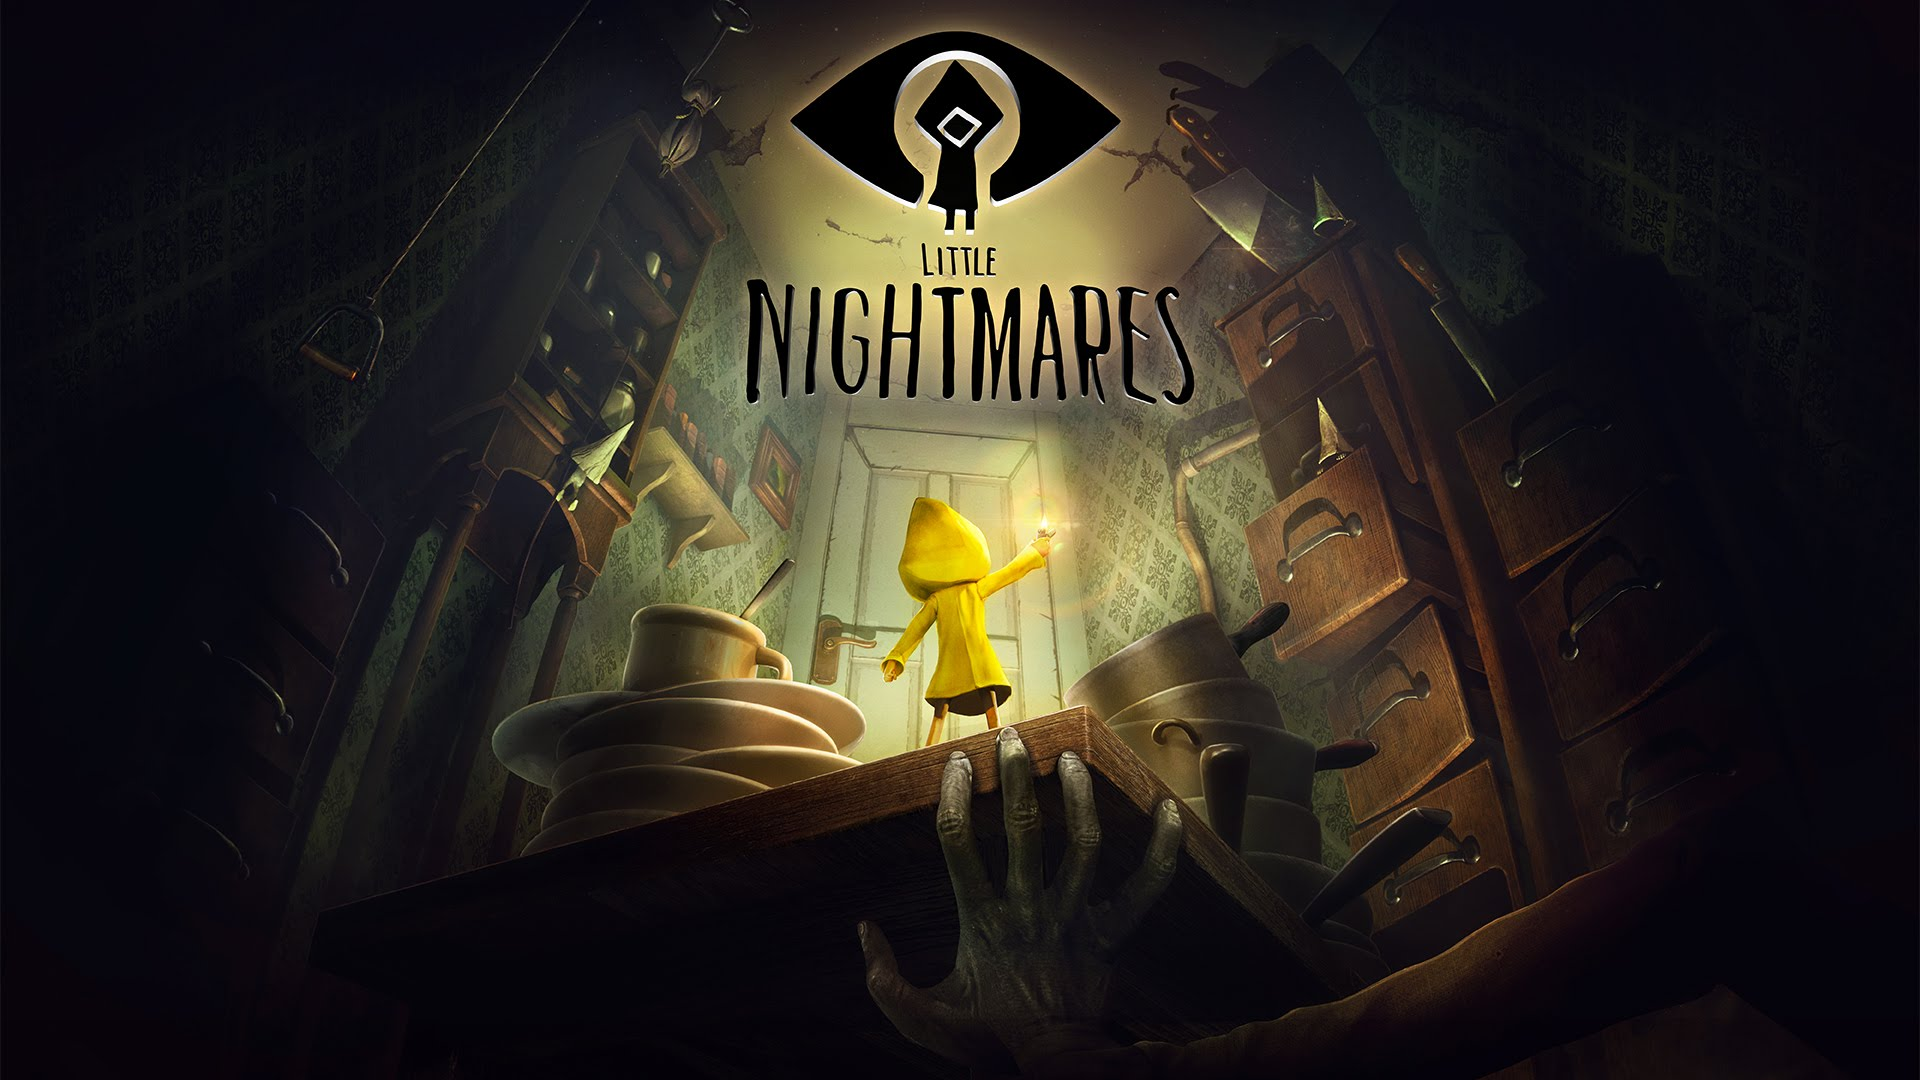 Little Nightmares v1.0.10.1